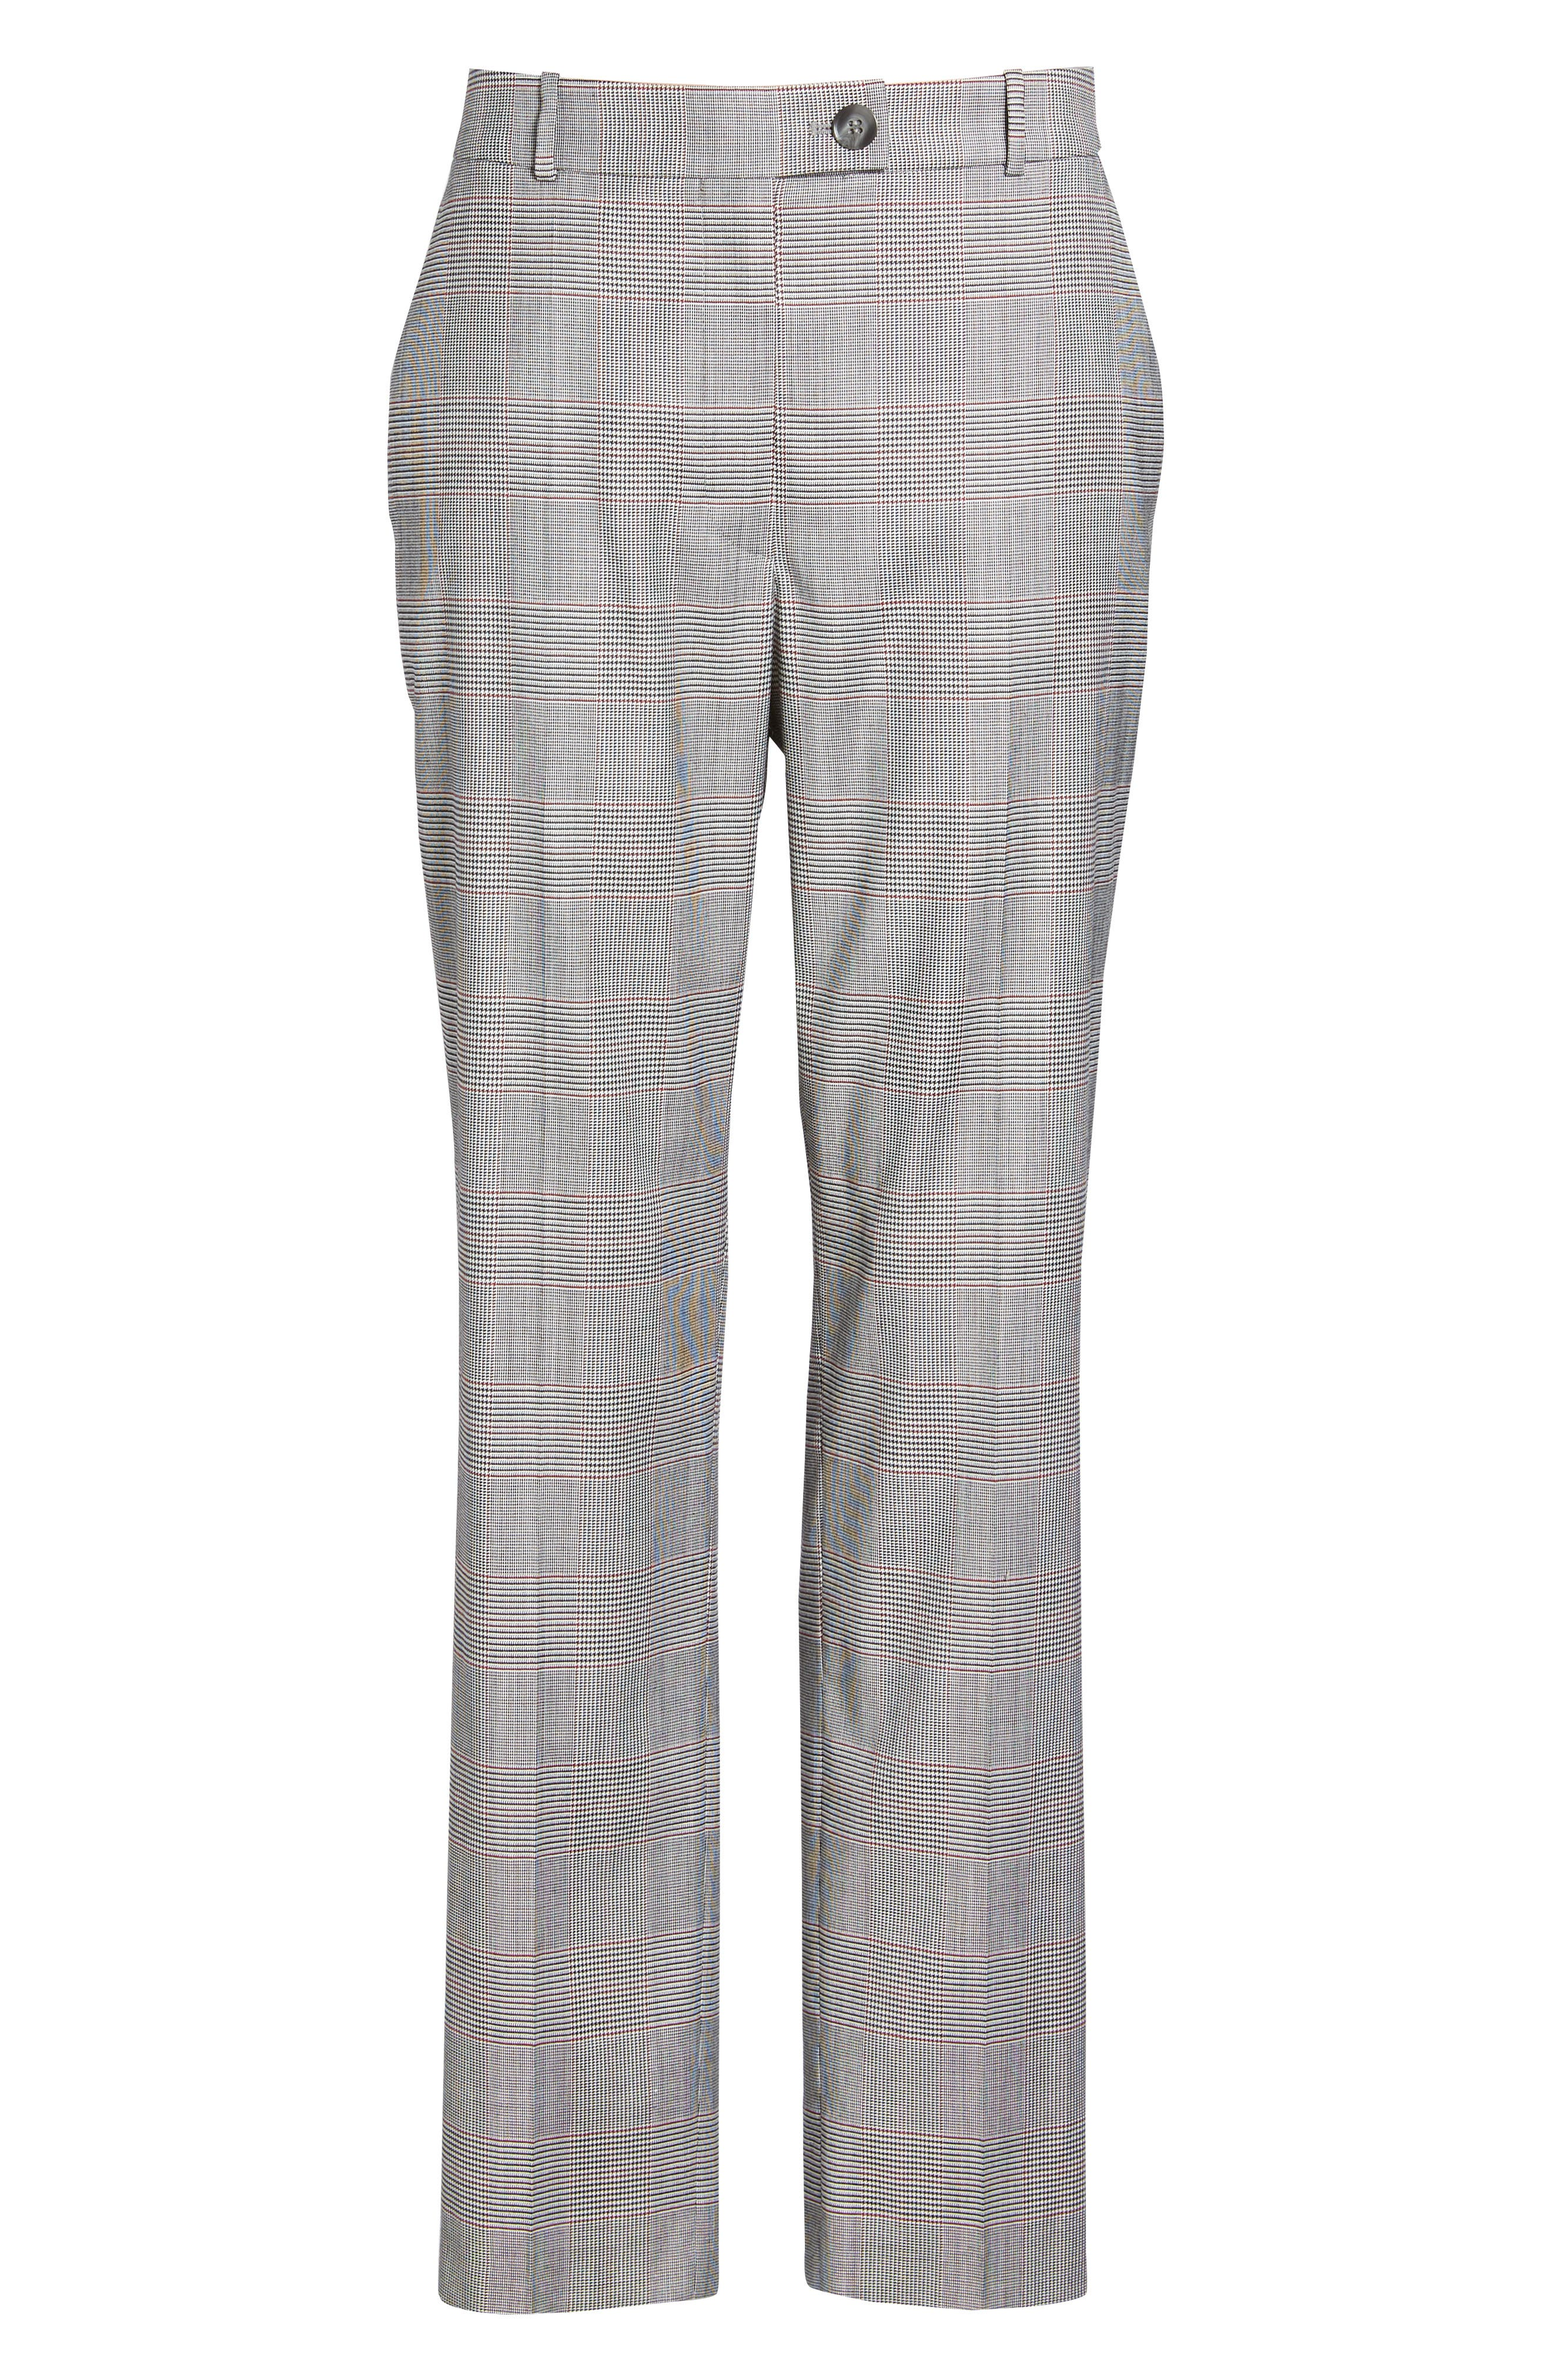 Tofilia Glencheck Slim Fit Trousers,                             Alternate thumbnail 7, color,                             874